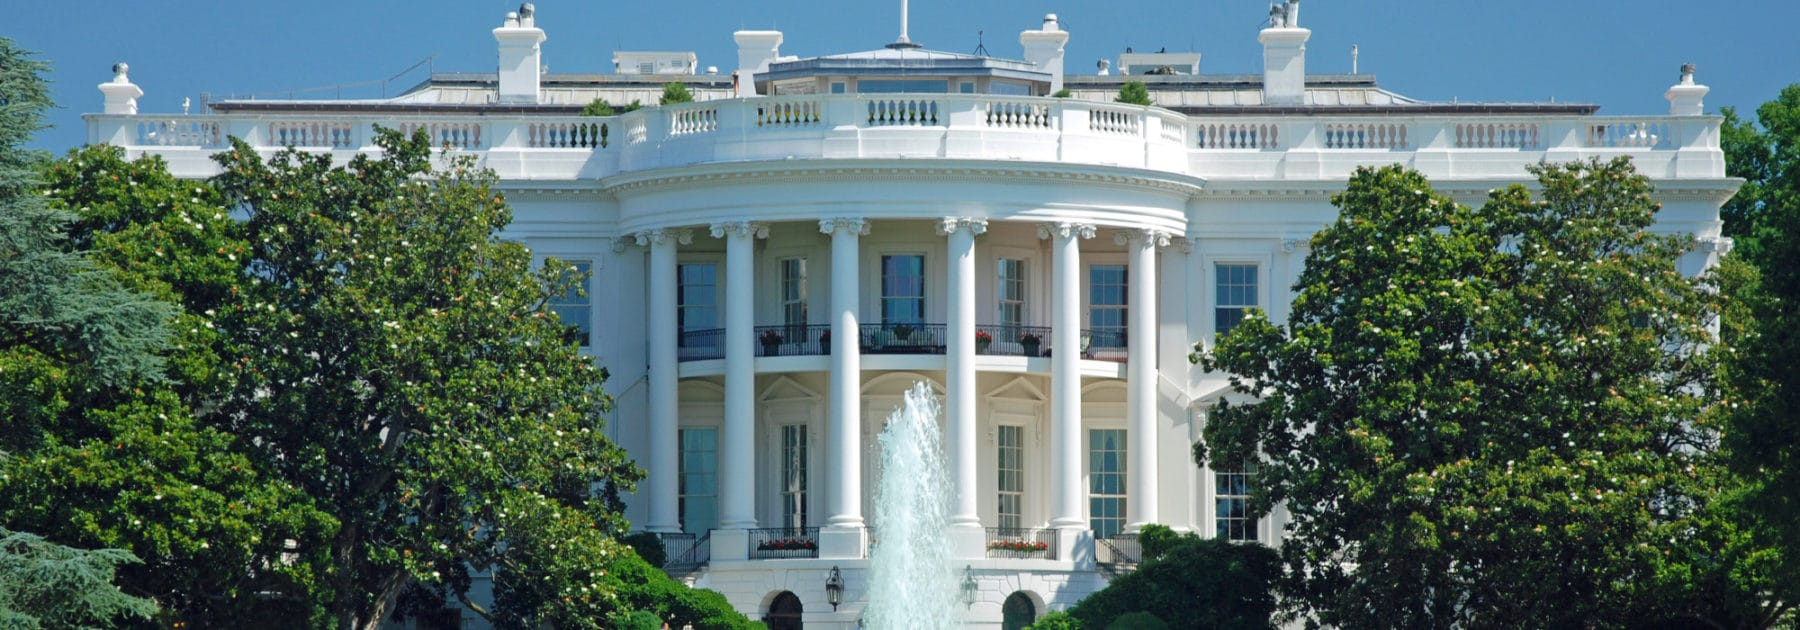 From Caterham to the White House